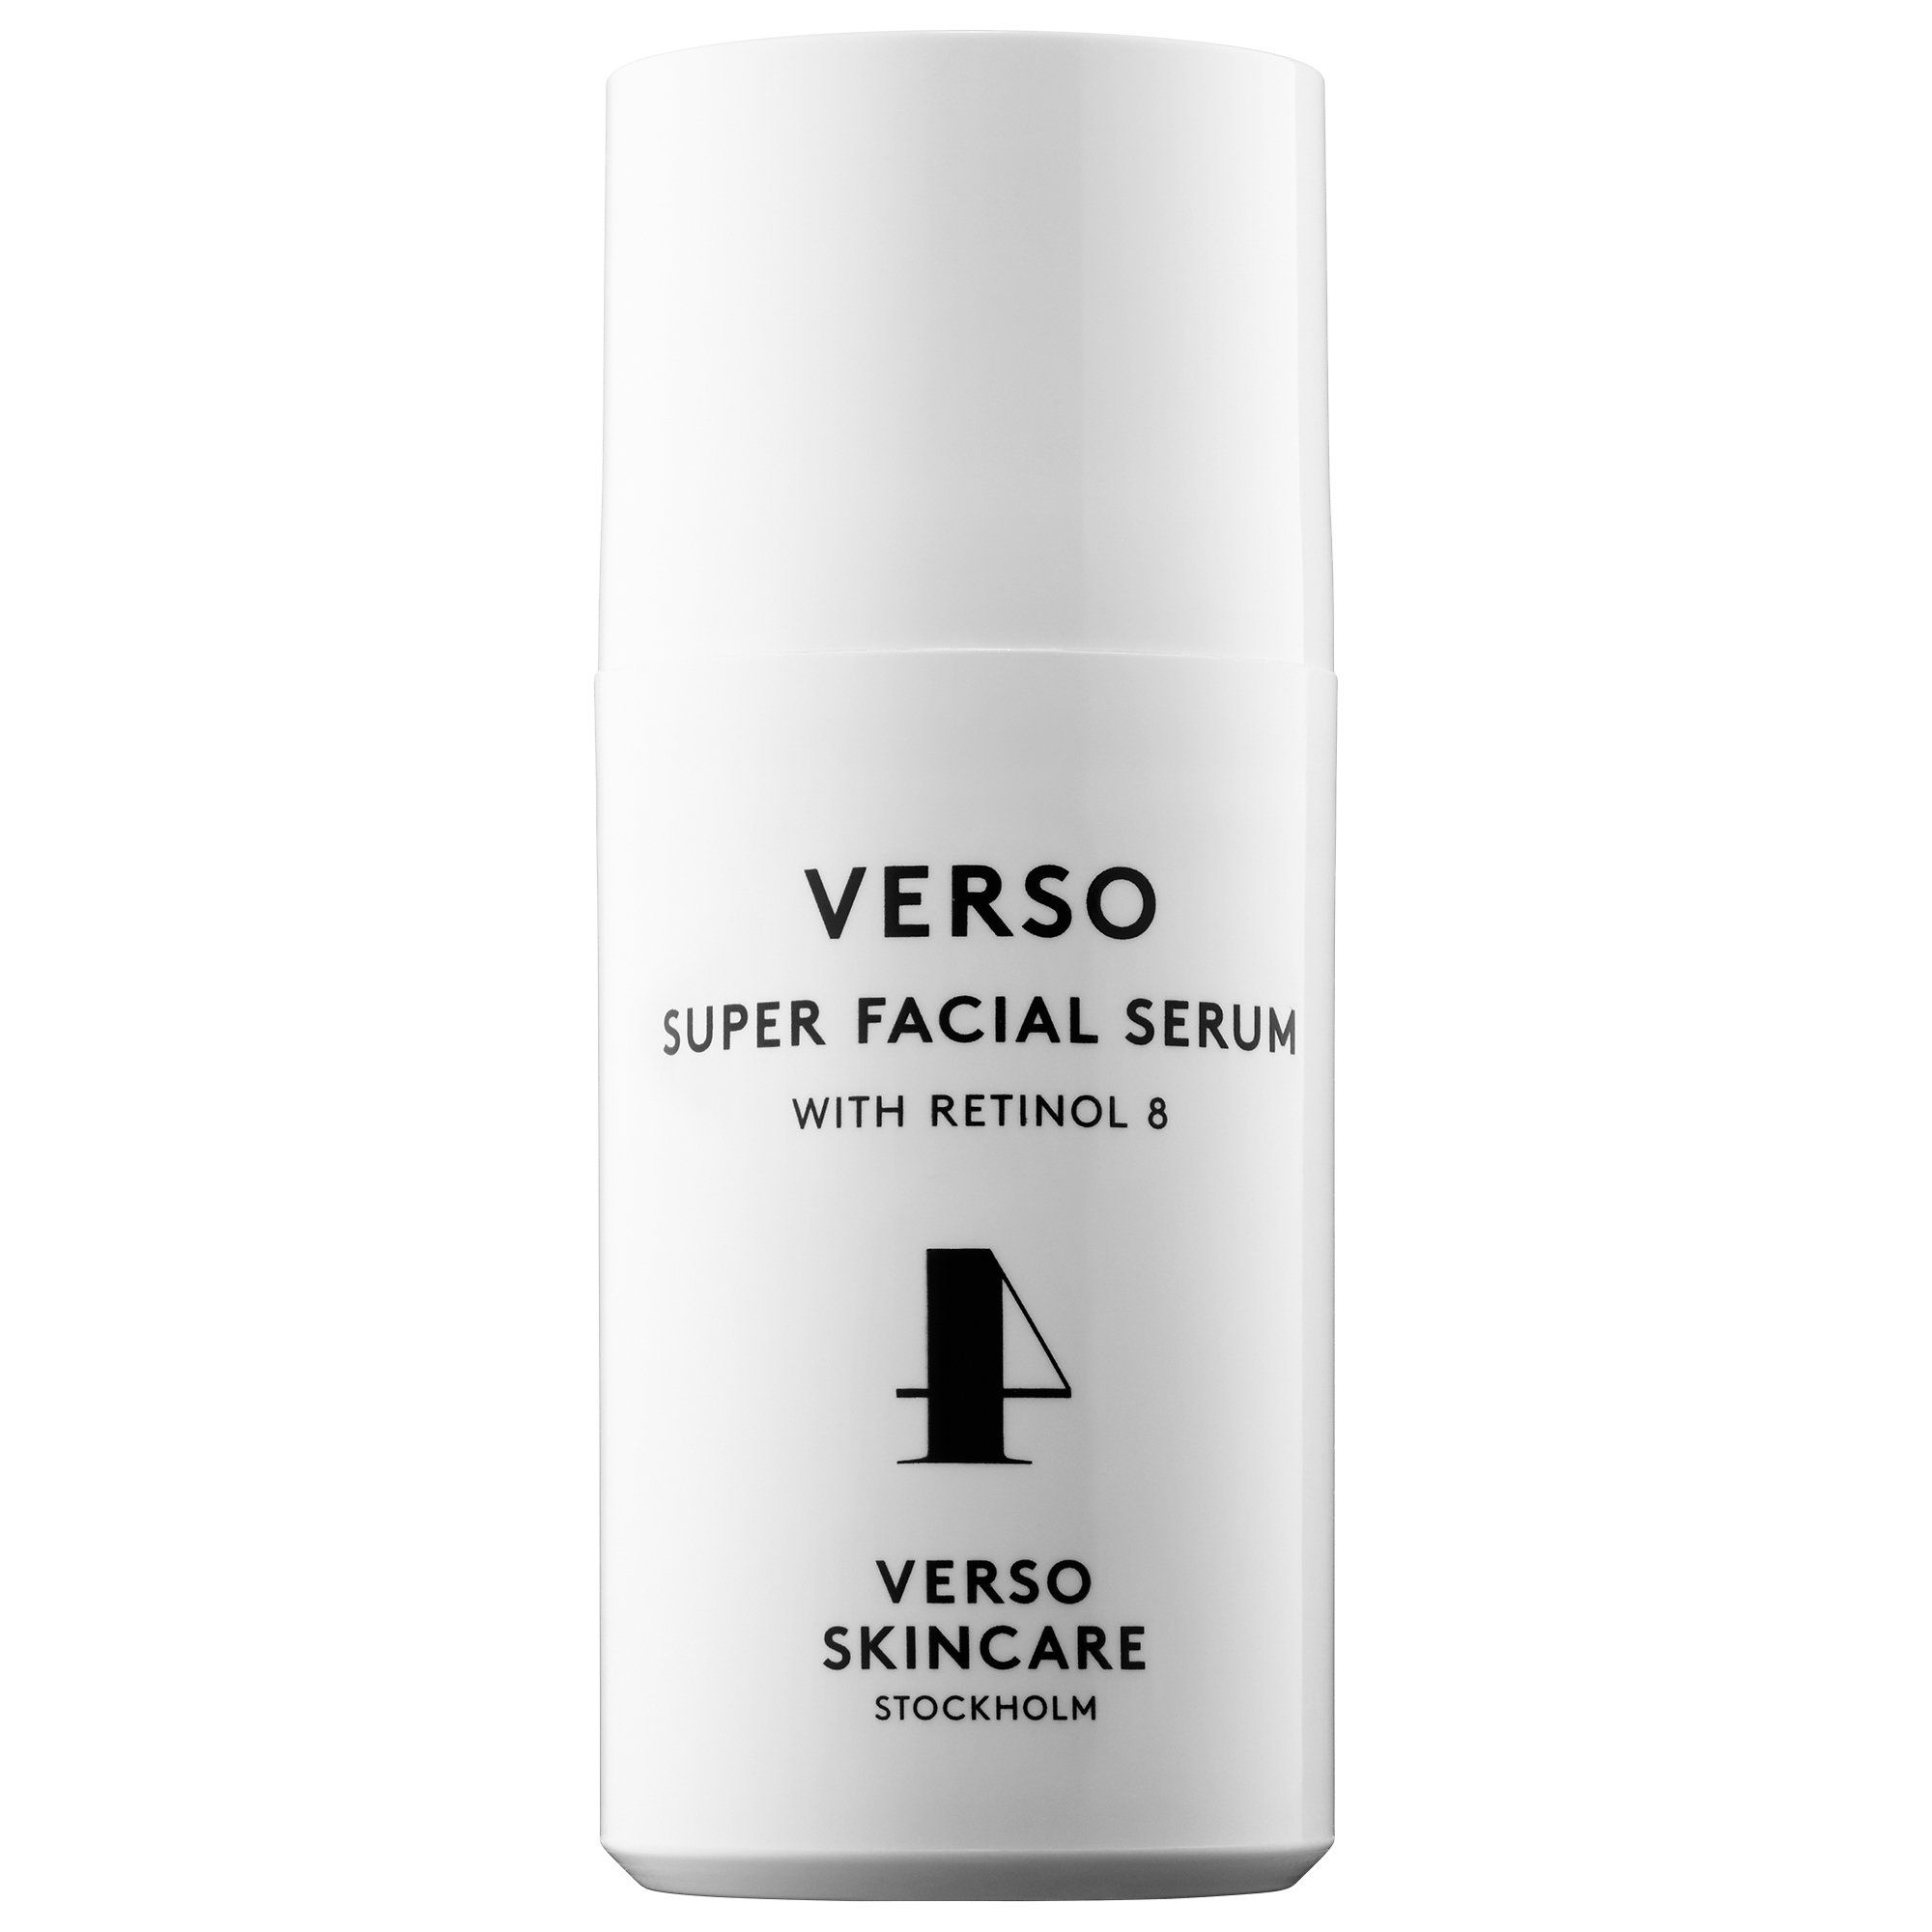 Shop VERSO SKINCARE's Super Facial Serum at Sephora. This healing facial serum contains vitamin C to improve texture and reduce the appearance of discoloration.